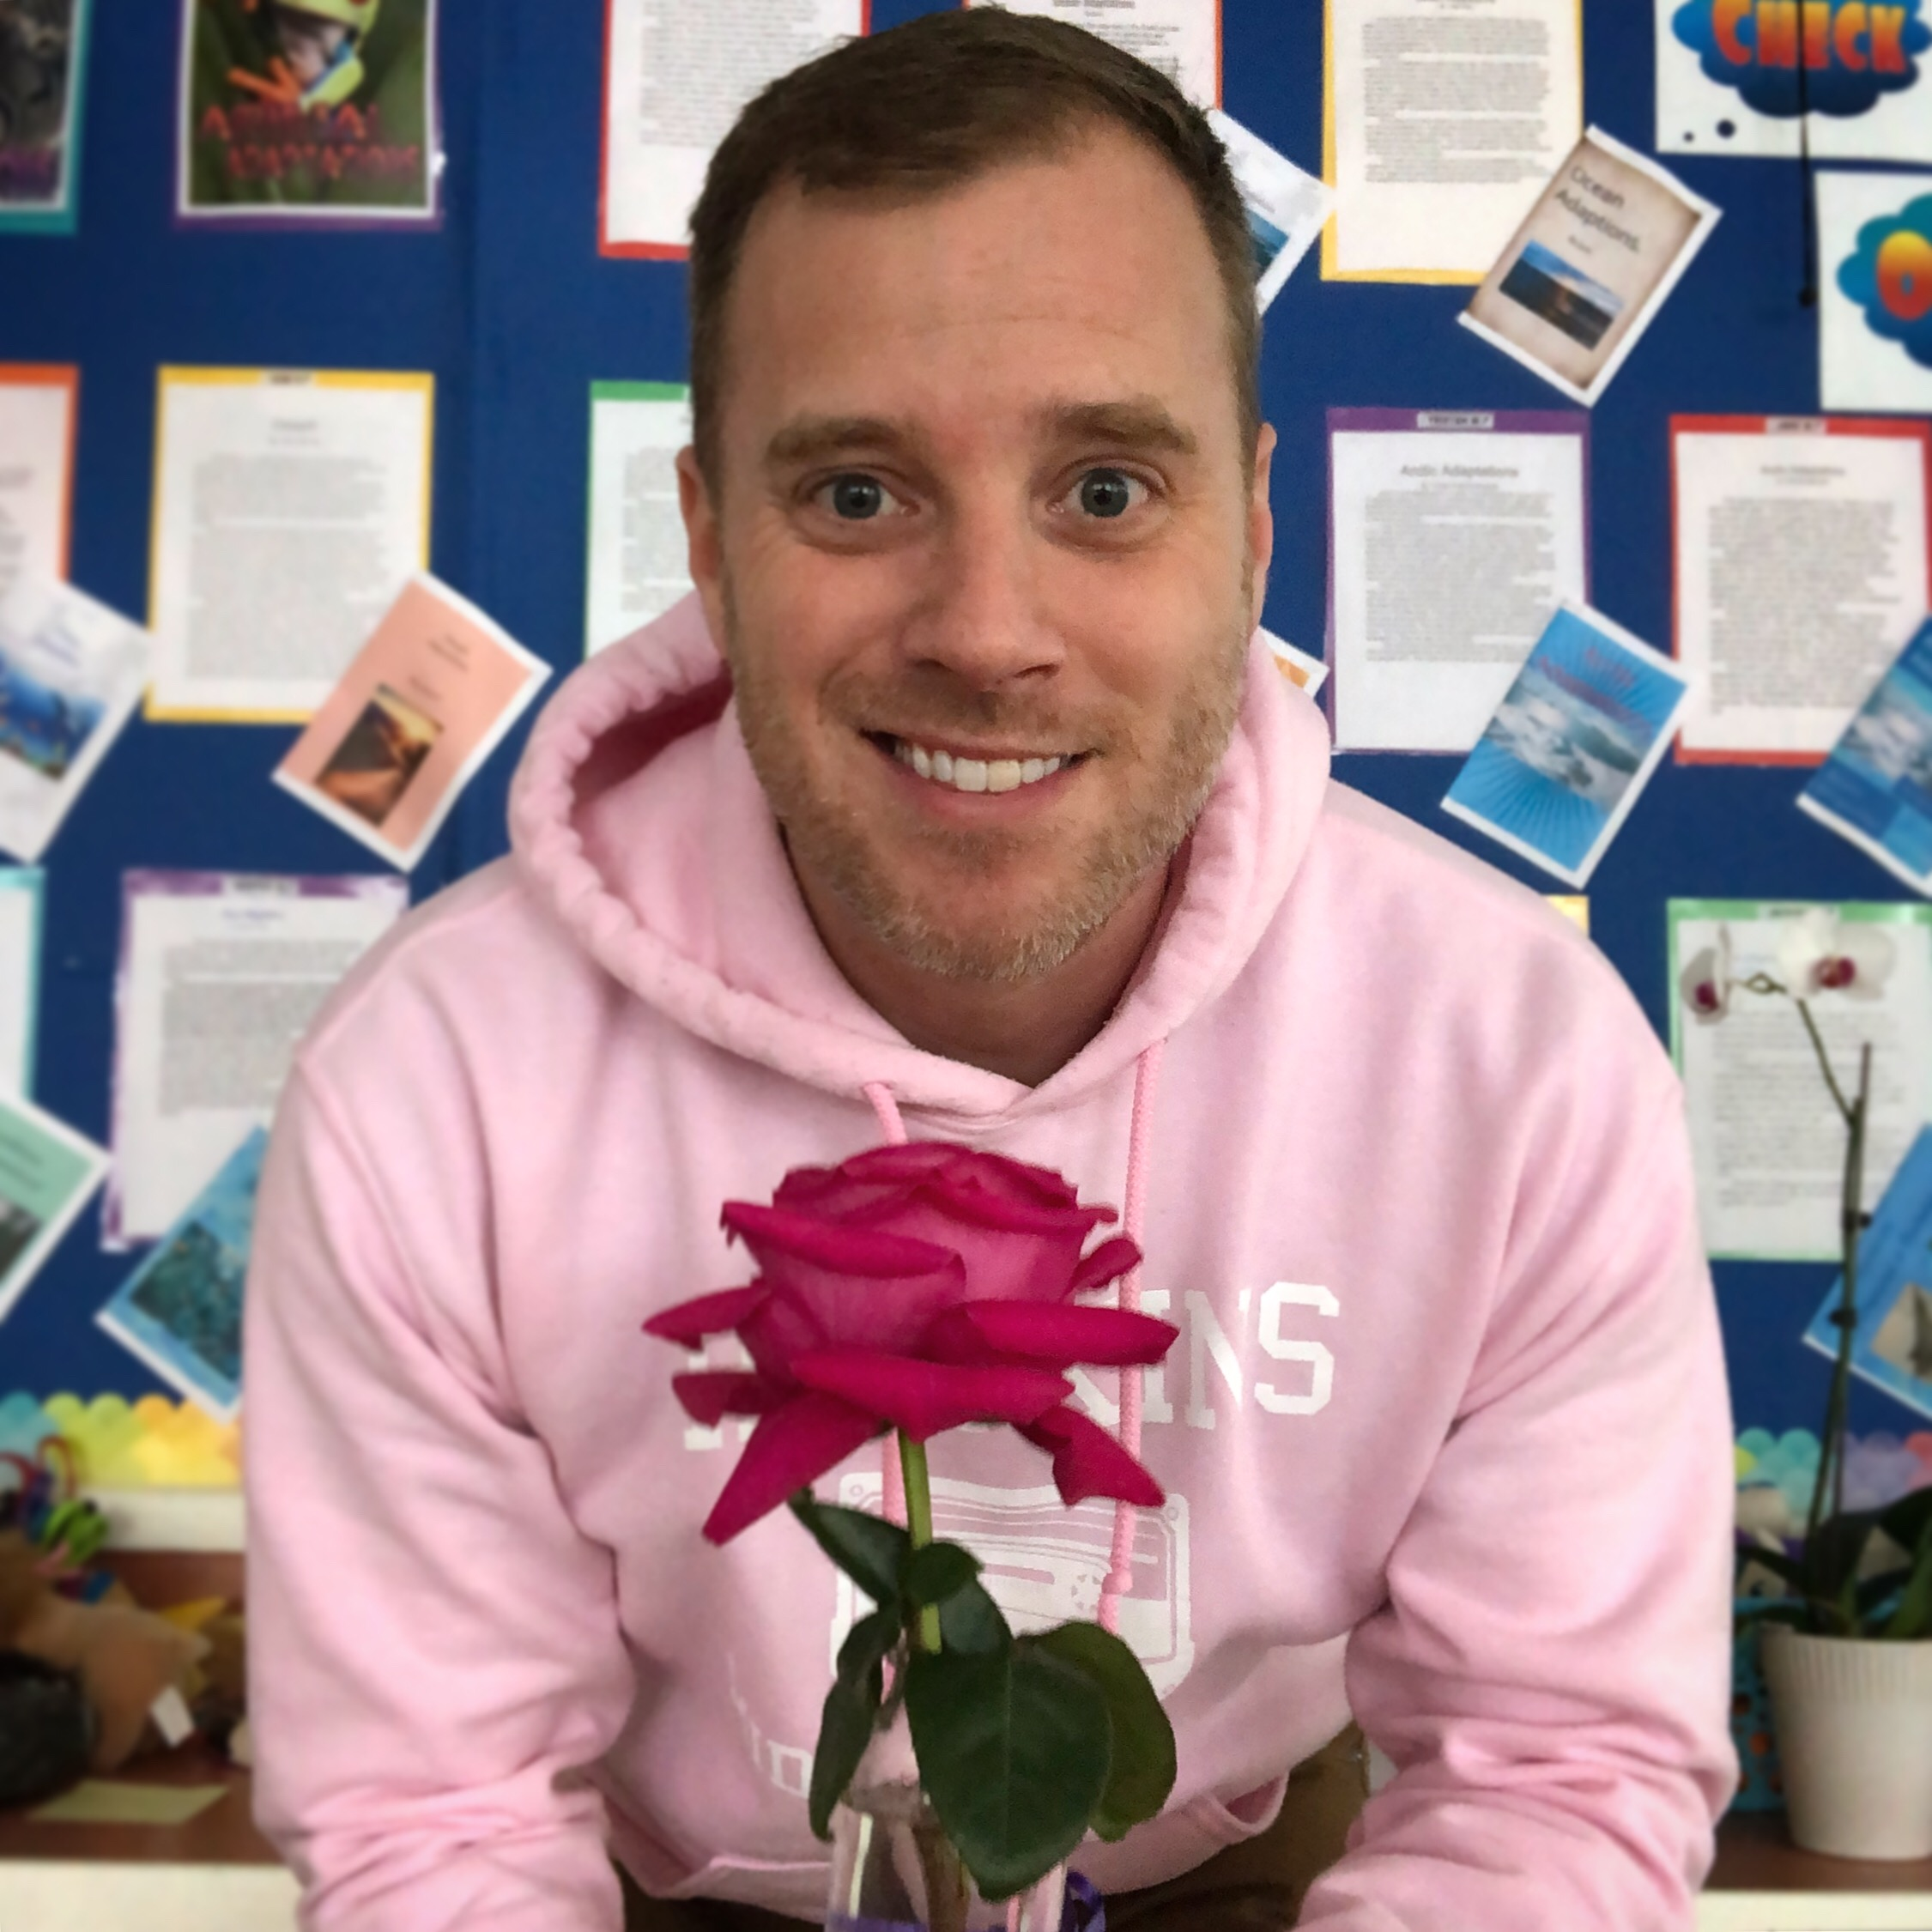 """Make it Okay to Say """"Gay"""" in Your Classroom - Nathan Lyon"""